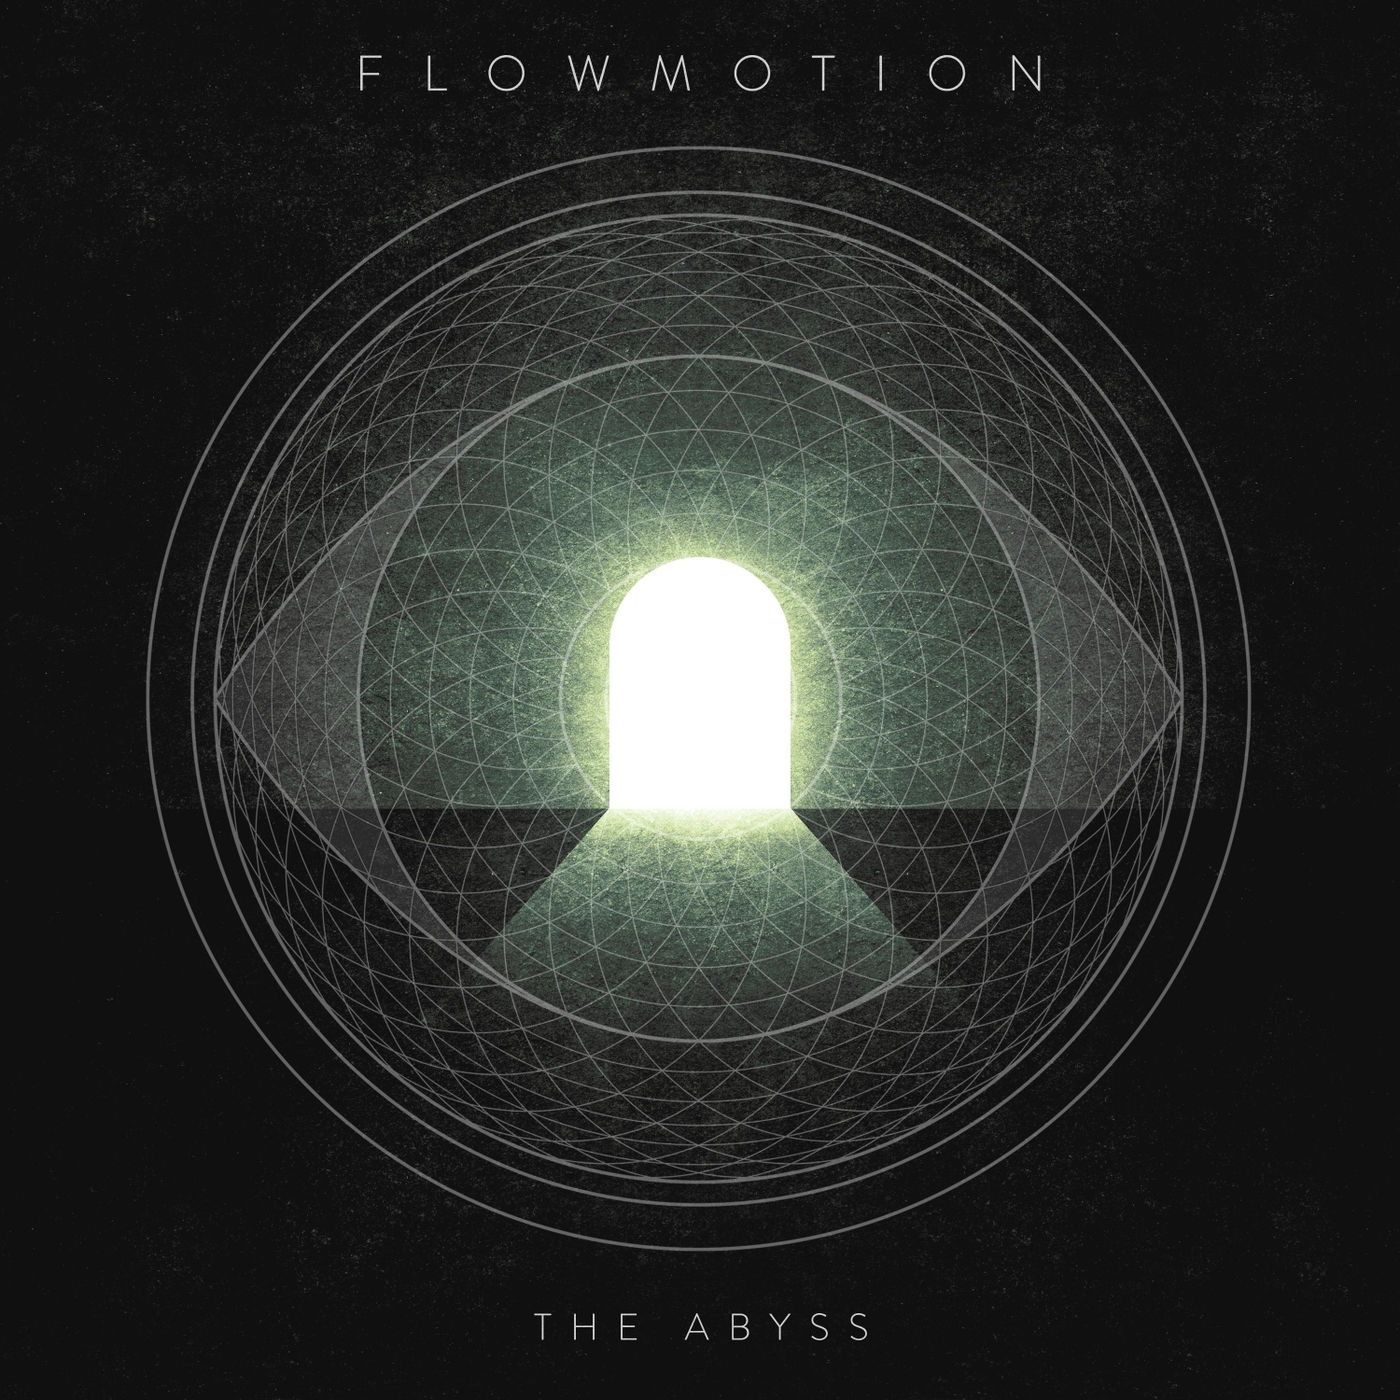 Flowmotion - The Abyss [single] (2020)